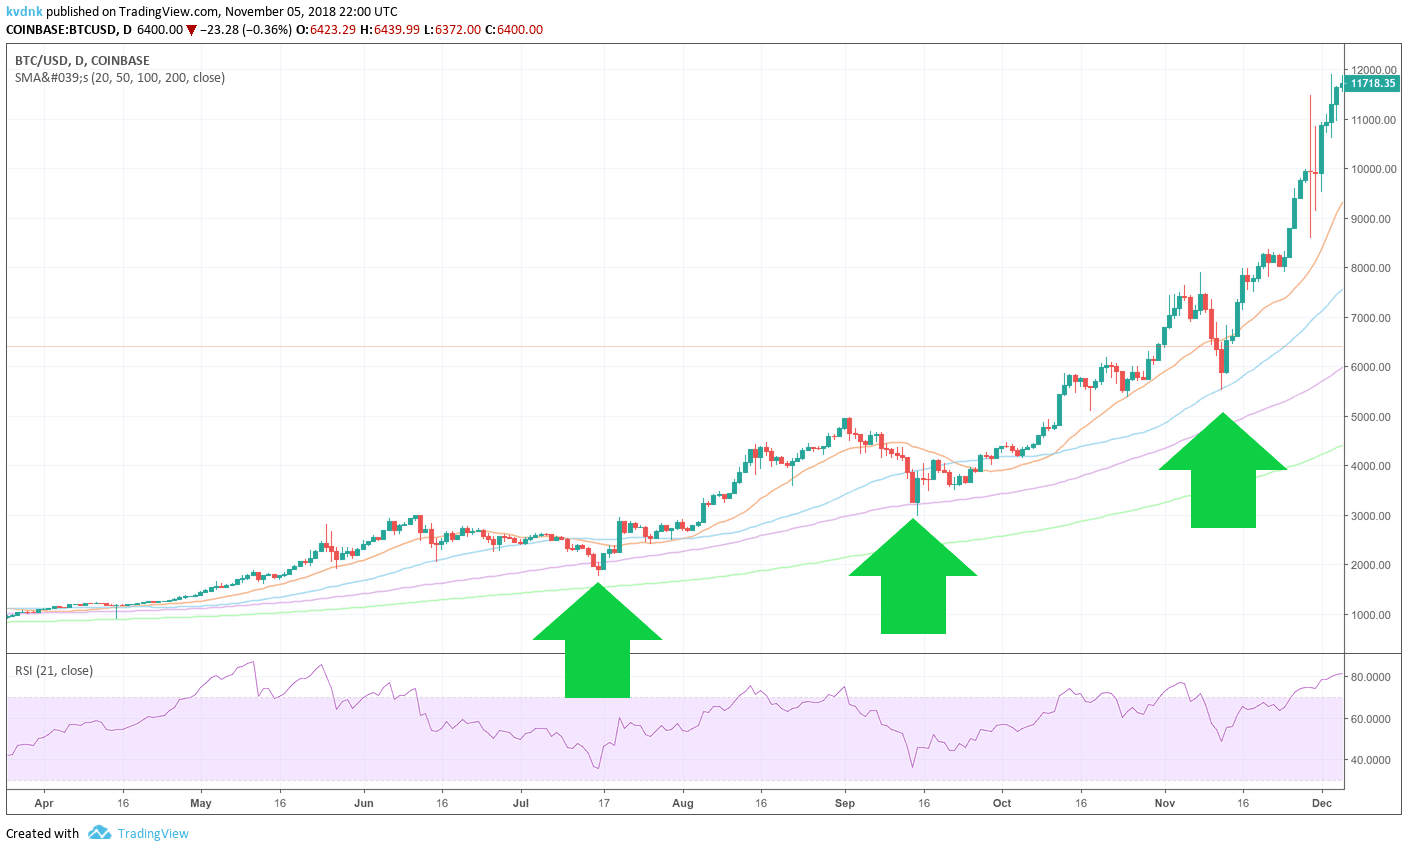 SMA support levels